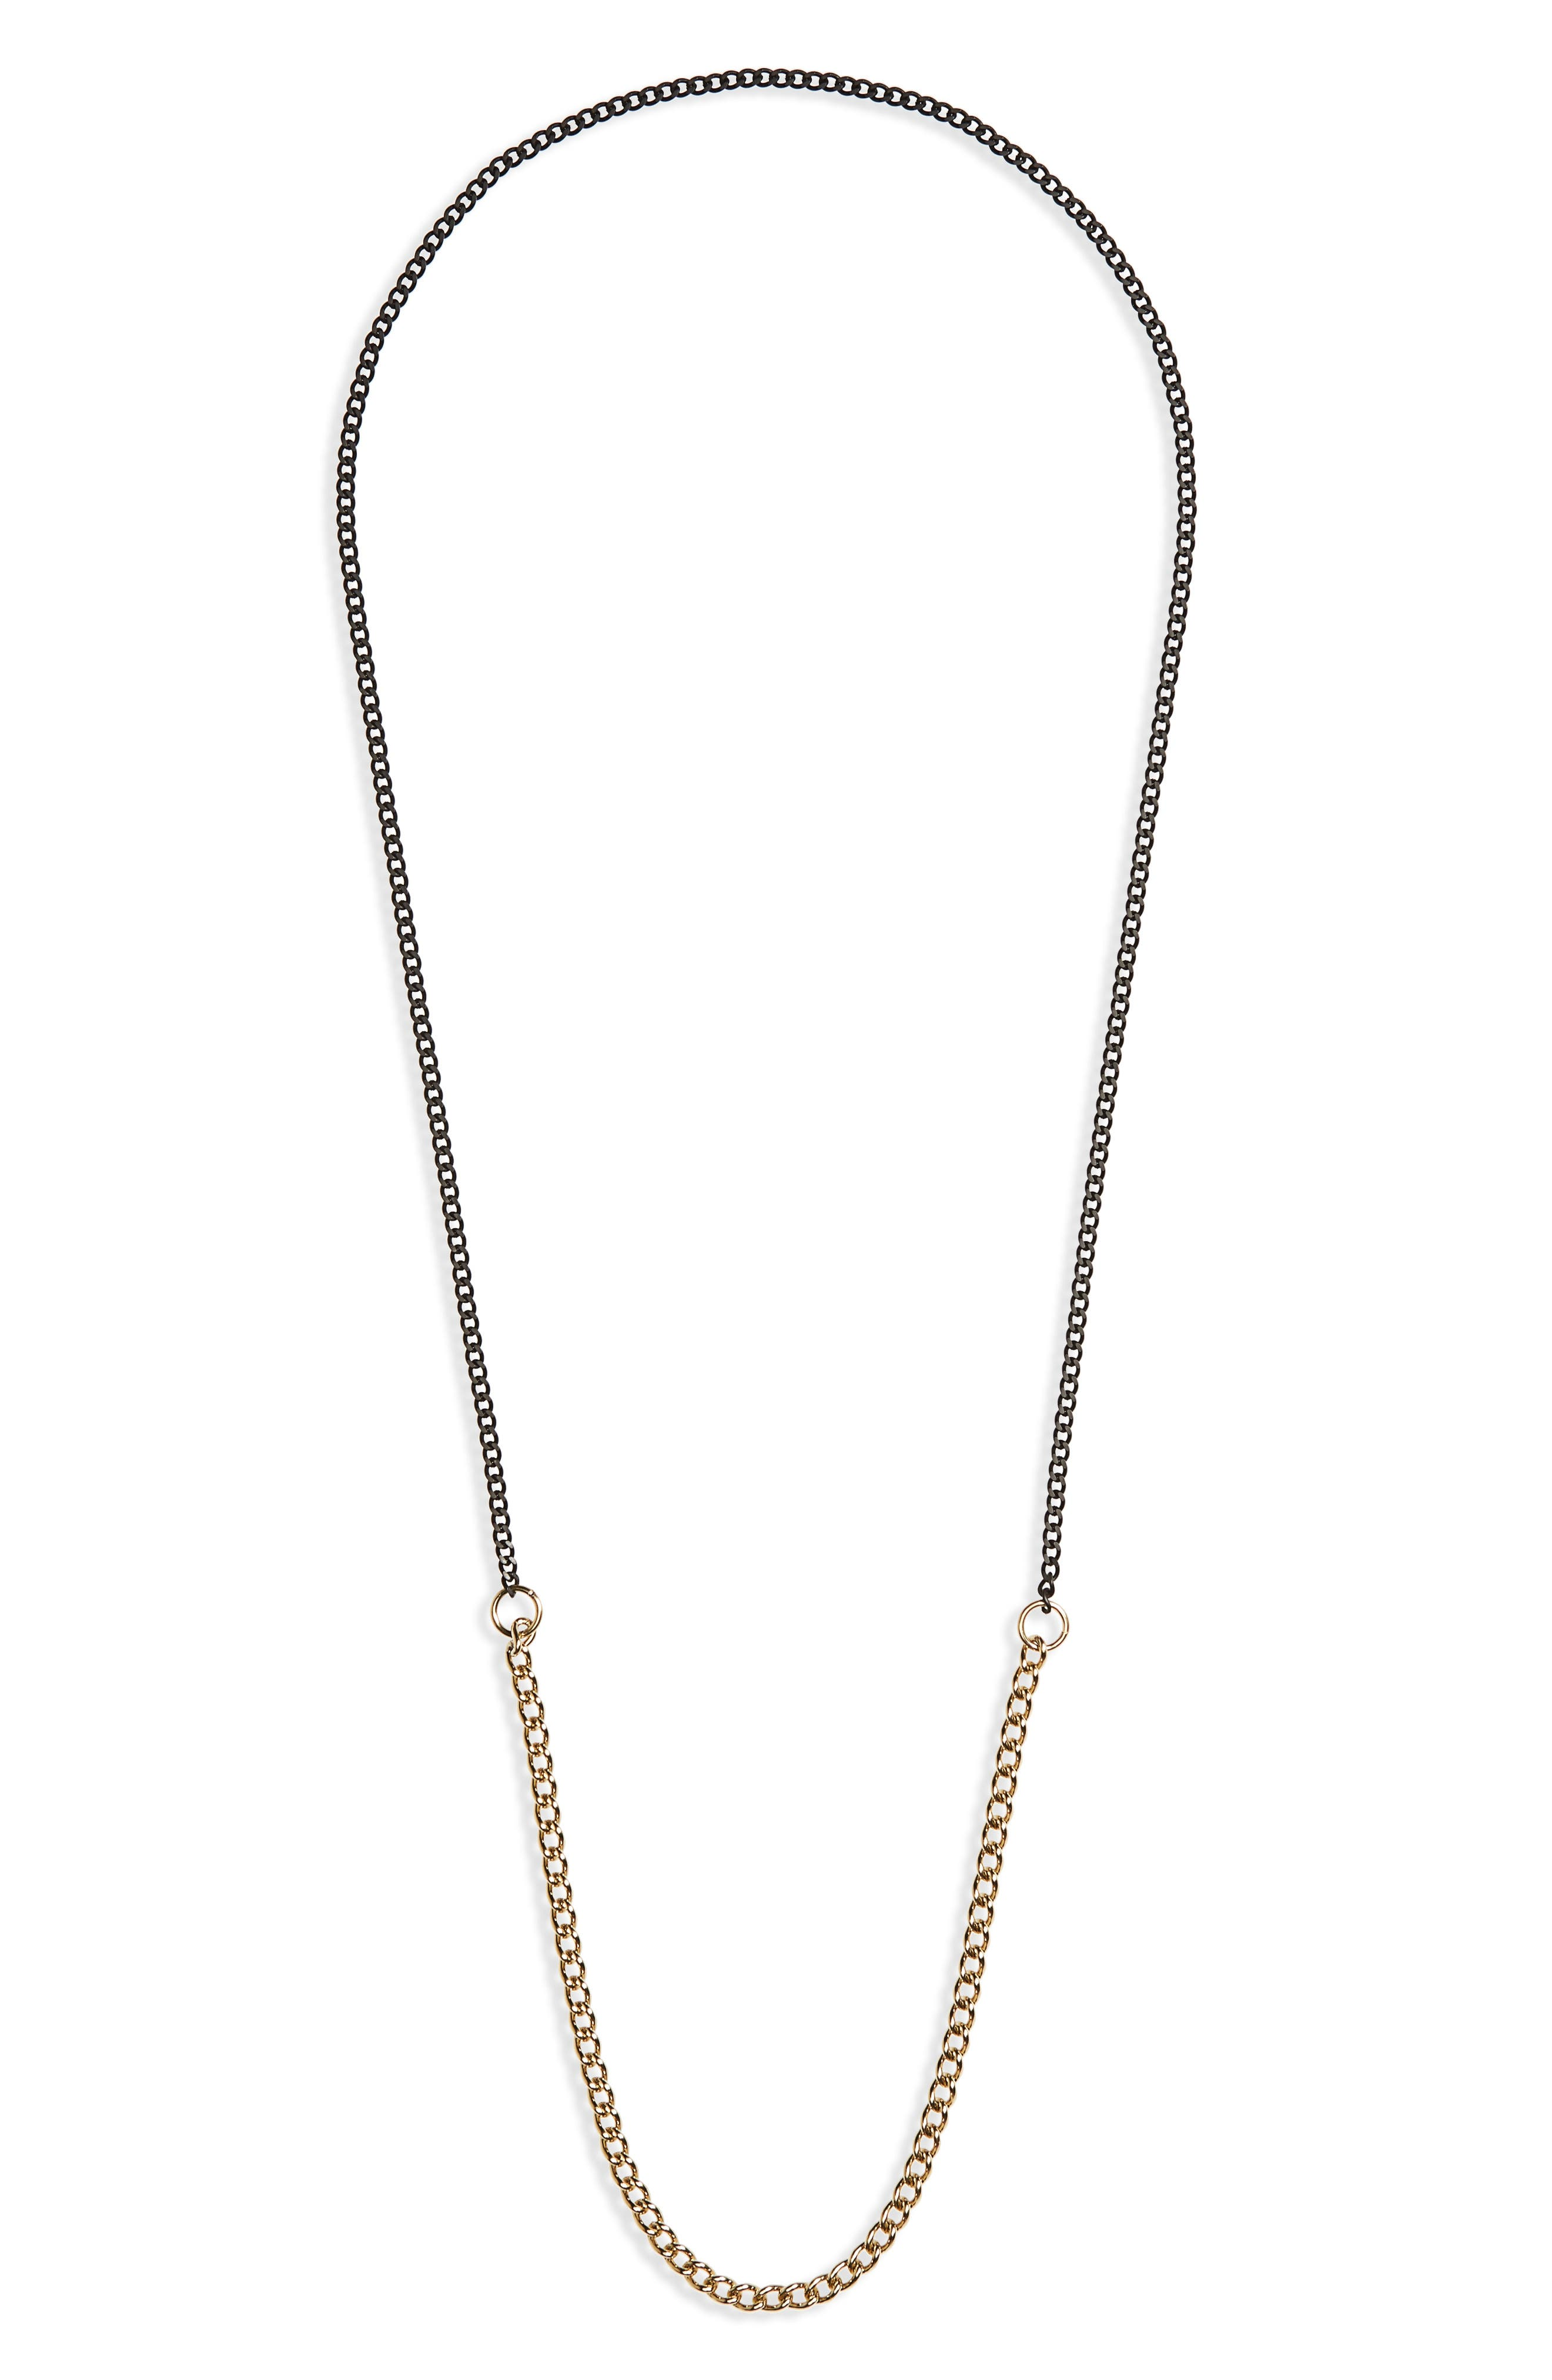 Main Image - Vitaly Binary Chain Link Necklace